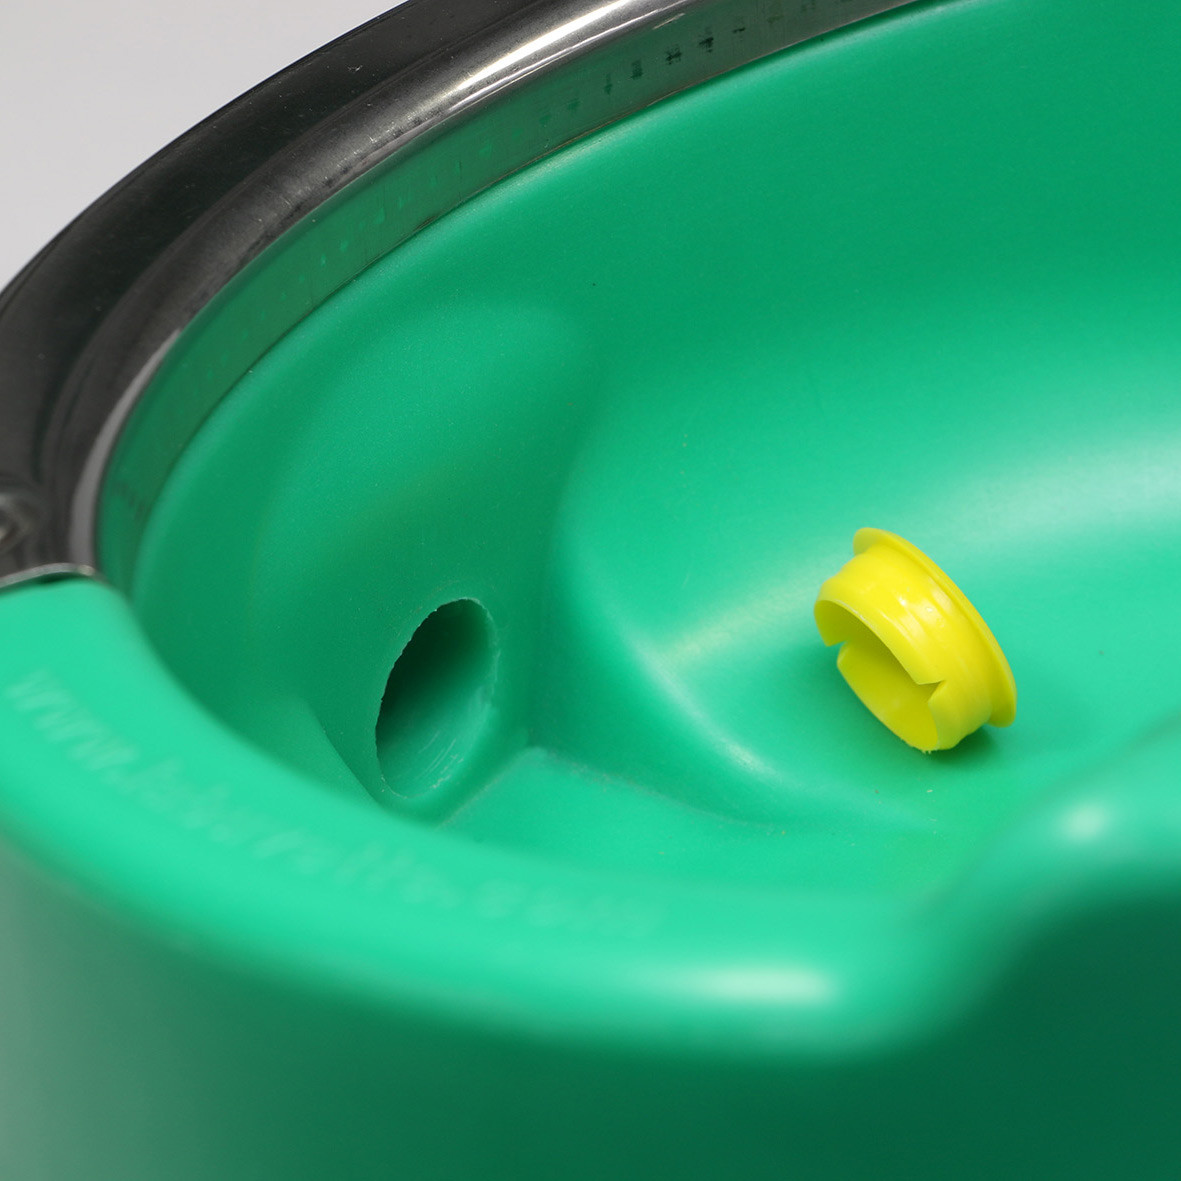 Easy cleaning with drain plug removable without tool